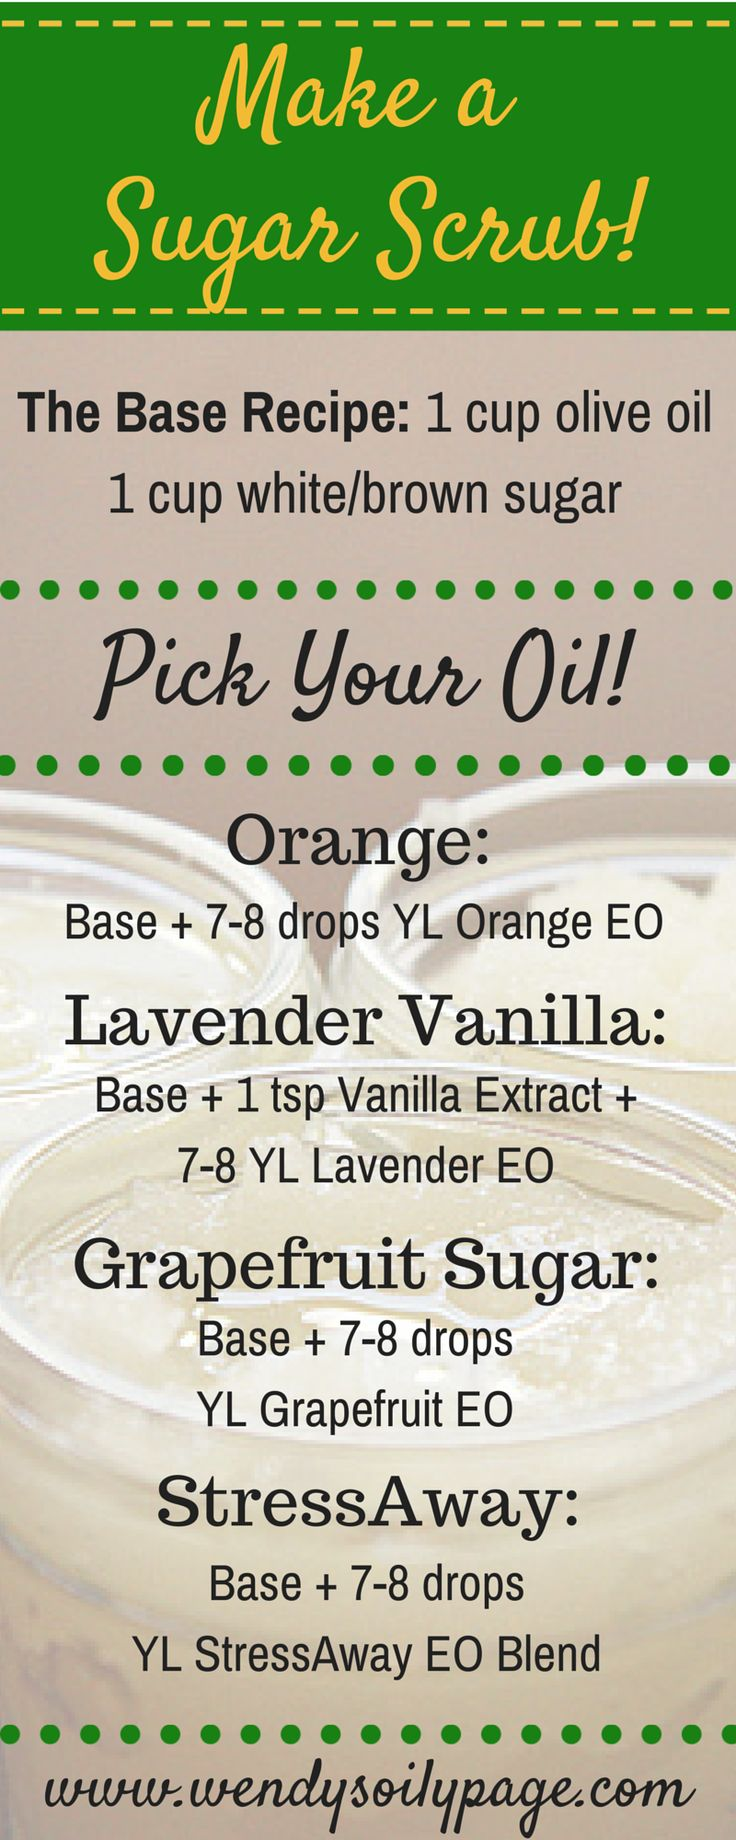 DIY Sugar Scrubs with Young Living Essential Oils! Use base recipe then add the scent you want! Add Vanilla to the Orange for an Orange Creamsicle. Yum! Options are endless! www.wendysoilypage.com